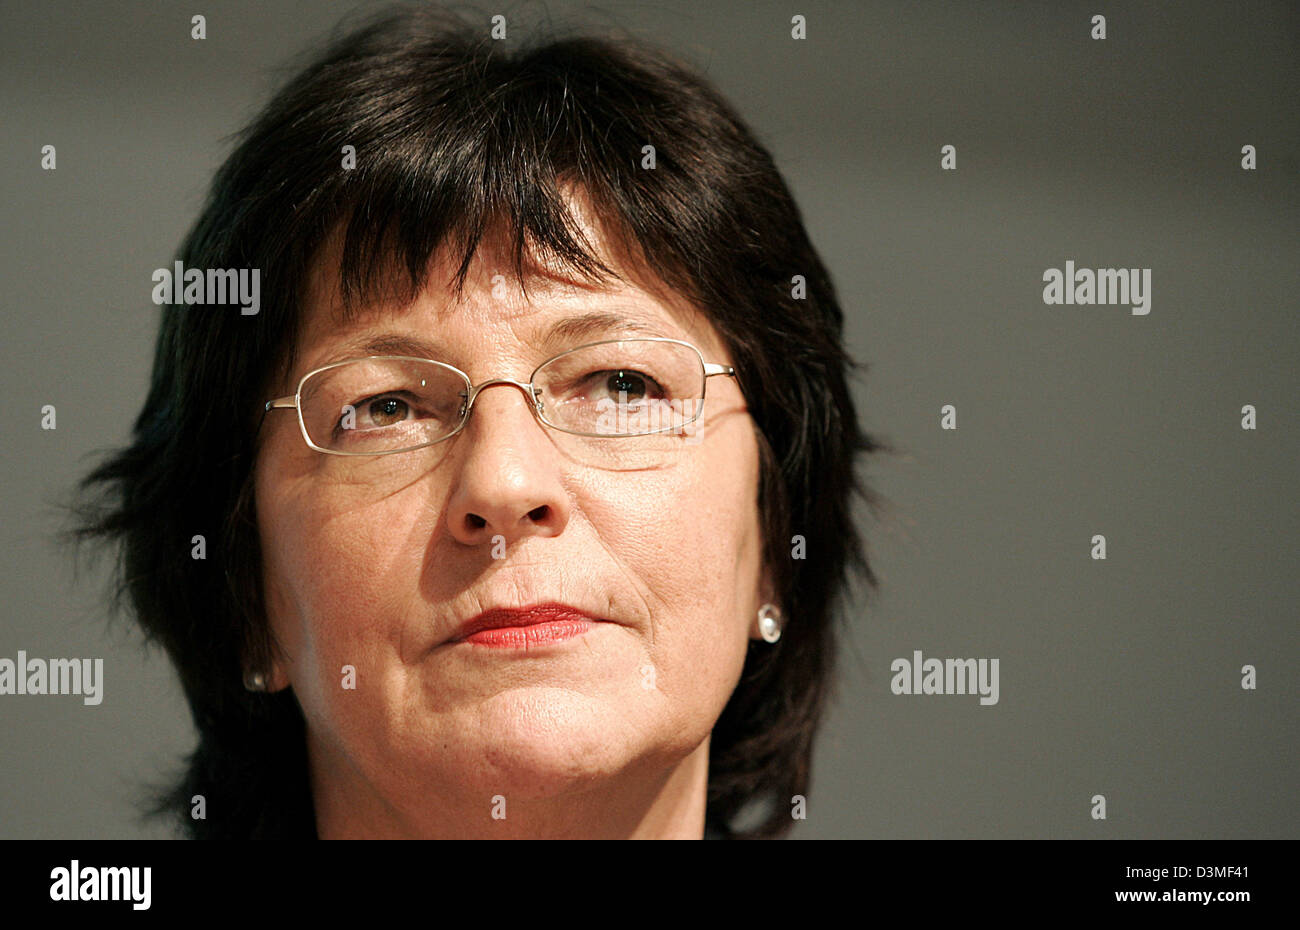 German Federal Health Minister Ulla Schmidt (SPD) answers questions during a press conference in Berlin, Germany, - Stock Image